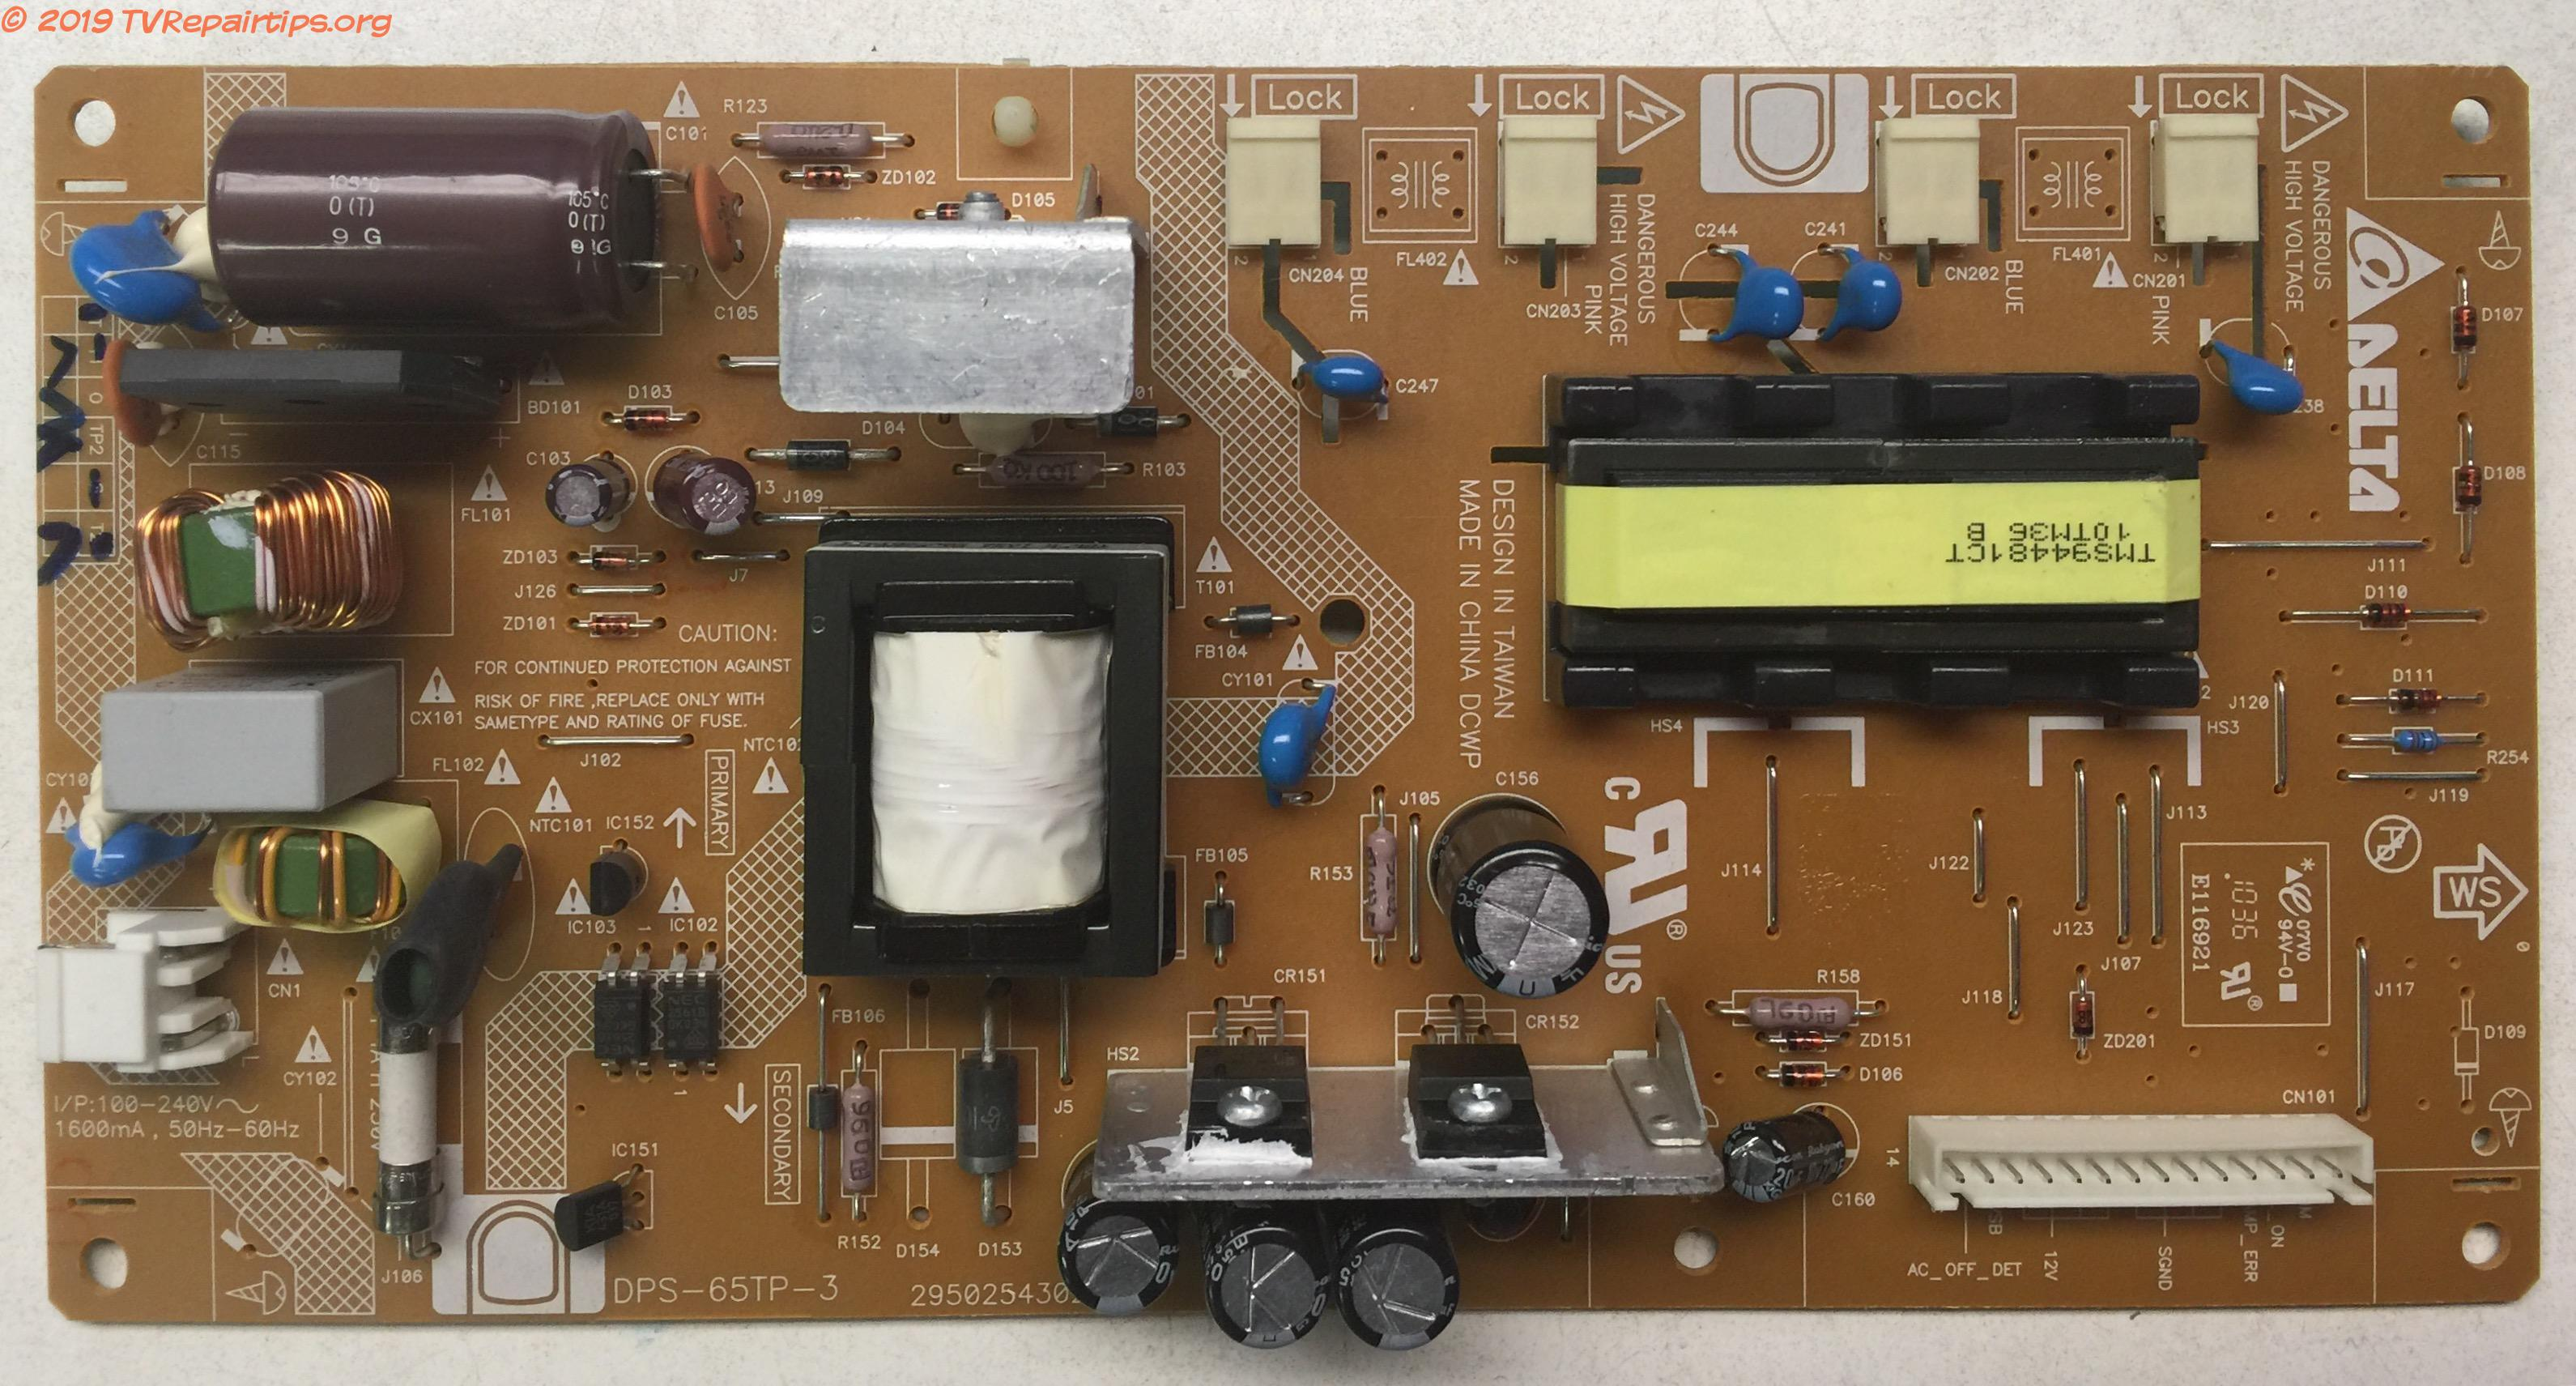 toshiba 22cv100u wiring diagram wiring library Wiring for Home Entertainment Systems toshiba dps 65tp 3 (2950254302, 56040651f1) power supply dps 65tp 3 toshiba 22cv100u wiring diagram